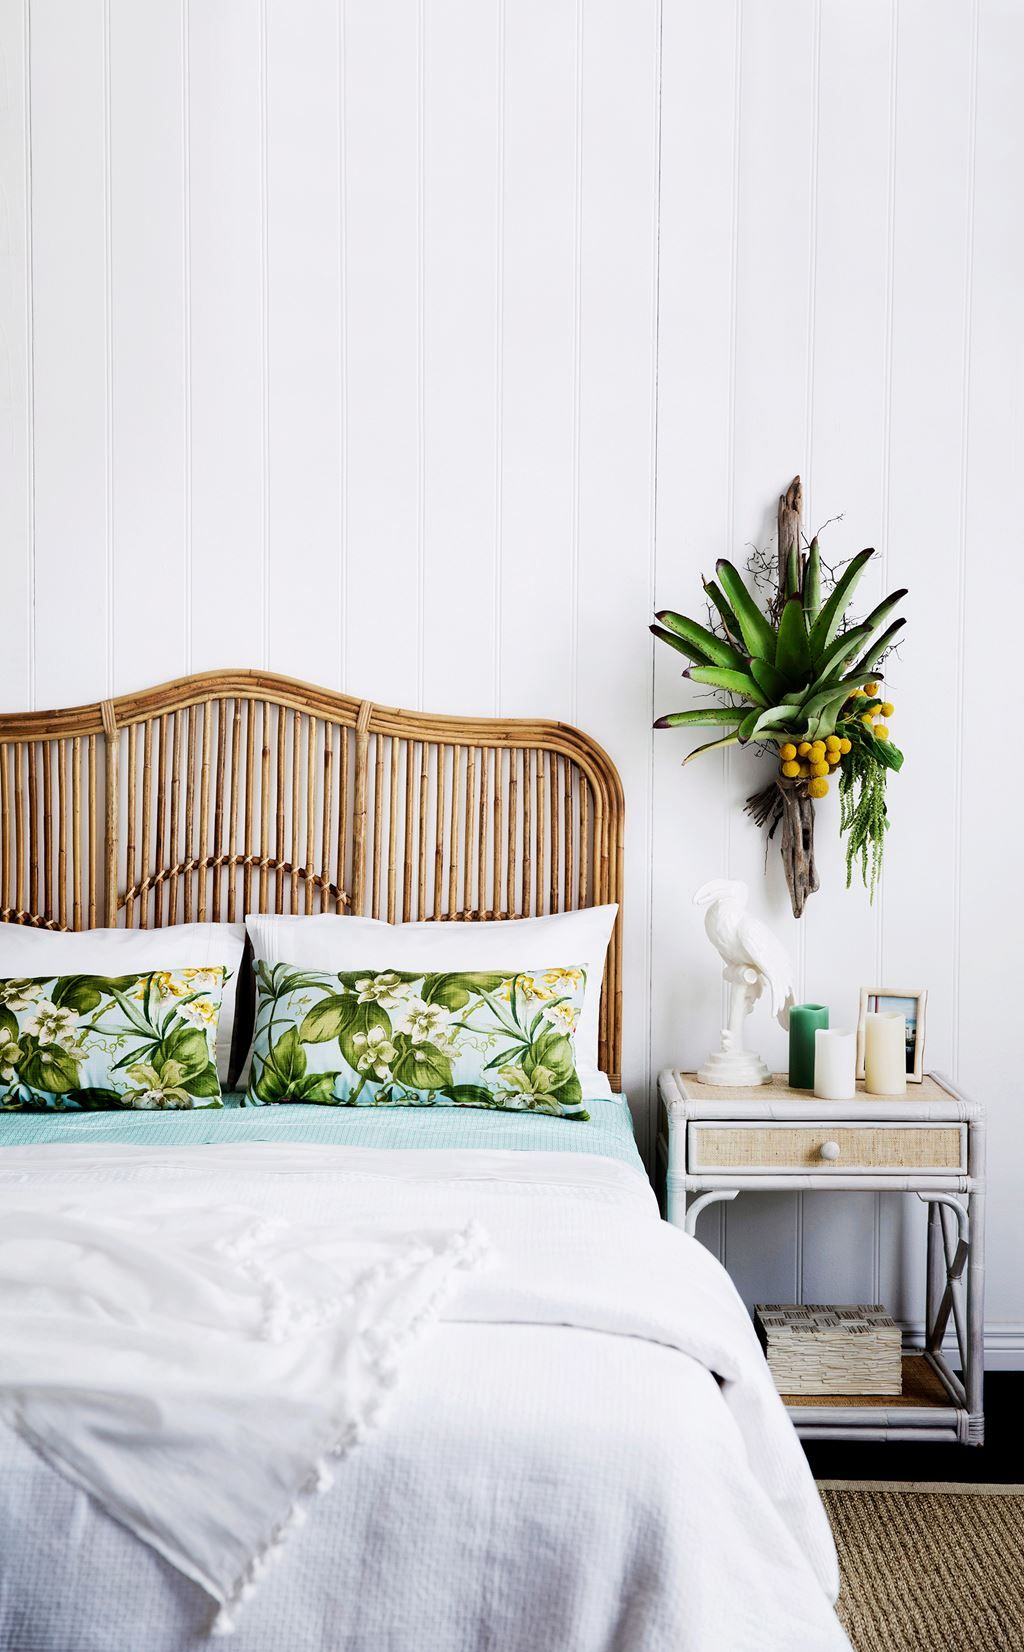 10 ideas for decorating with cane, wicker and rattan